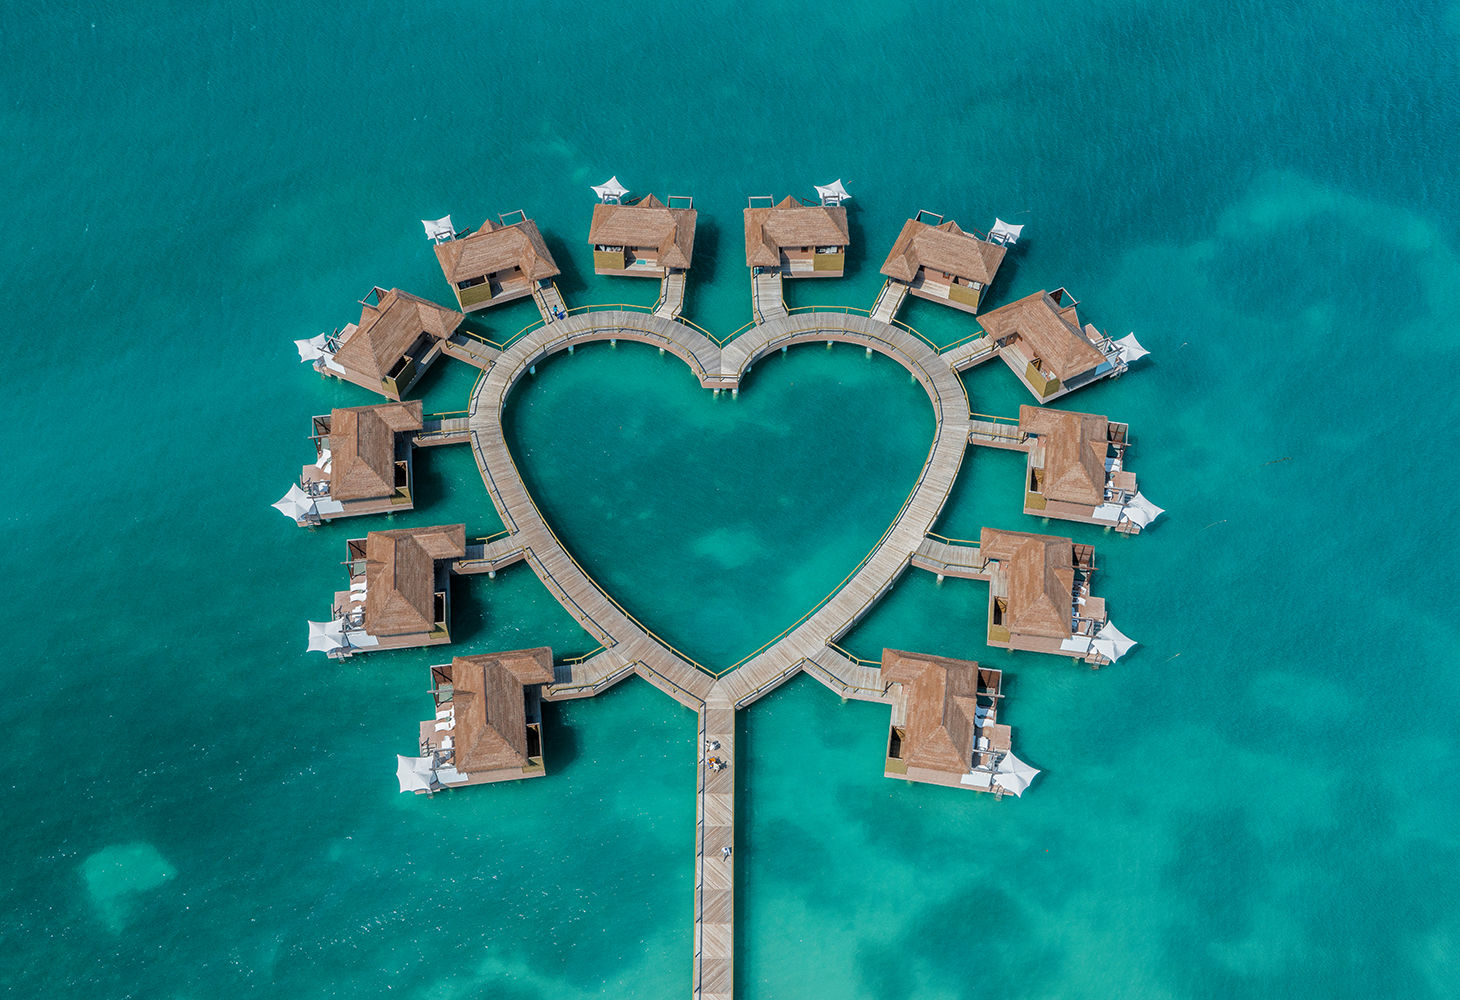 overwater bungalows in the shape of a heart in jamaica